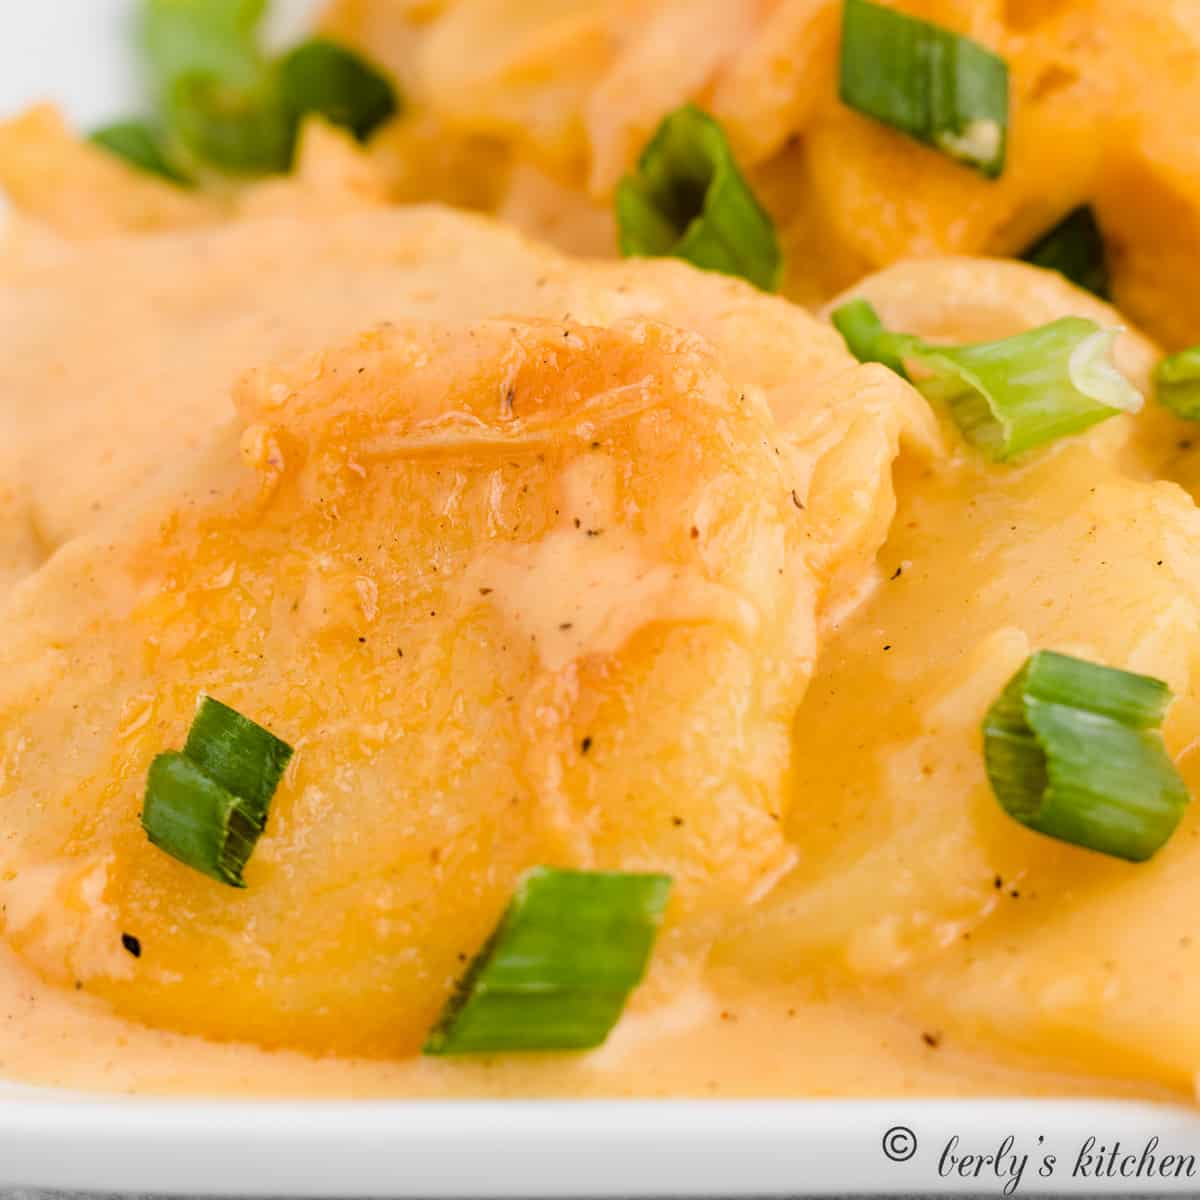 Creamy scalloped potatoes garnished with green onions.